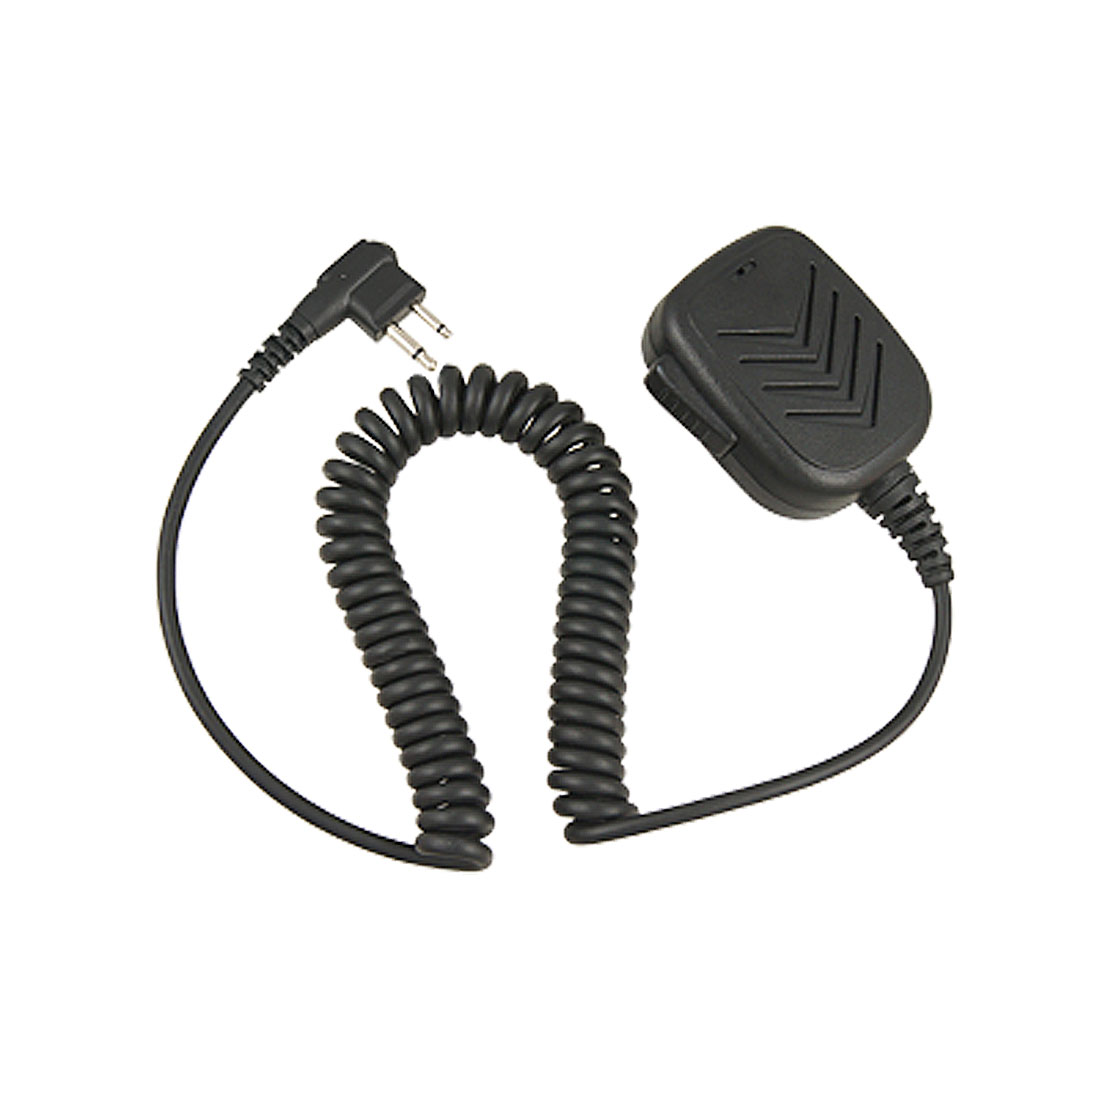 Black 2 Pole Connector Handheld Speaker Microphone for Motorola GP88